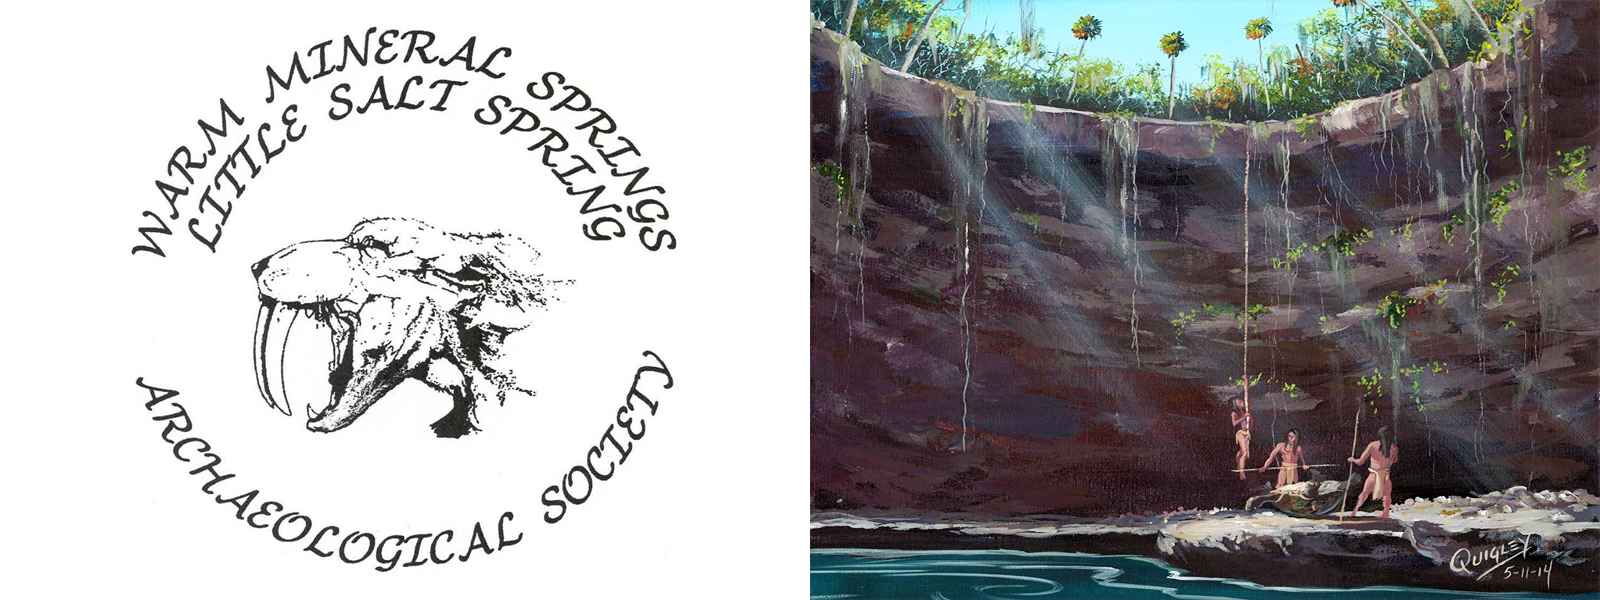 WARM MINERAL SPRINGS/LITTLE SALT SPRING ARCHAEOLOGICAL SOCIETY [painting by Dean Quigley]